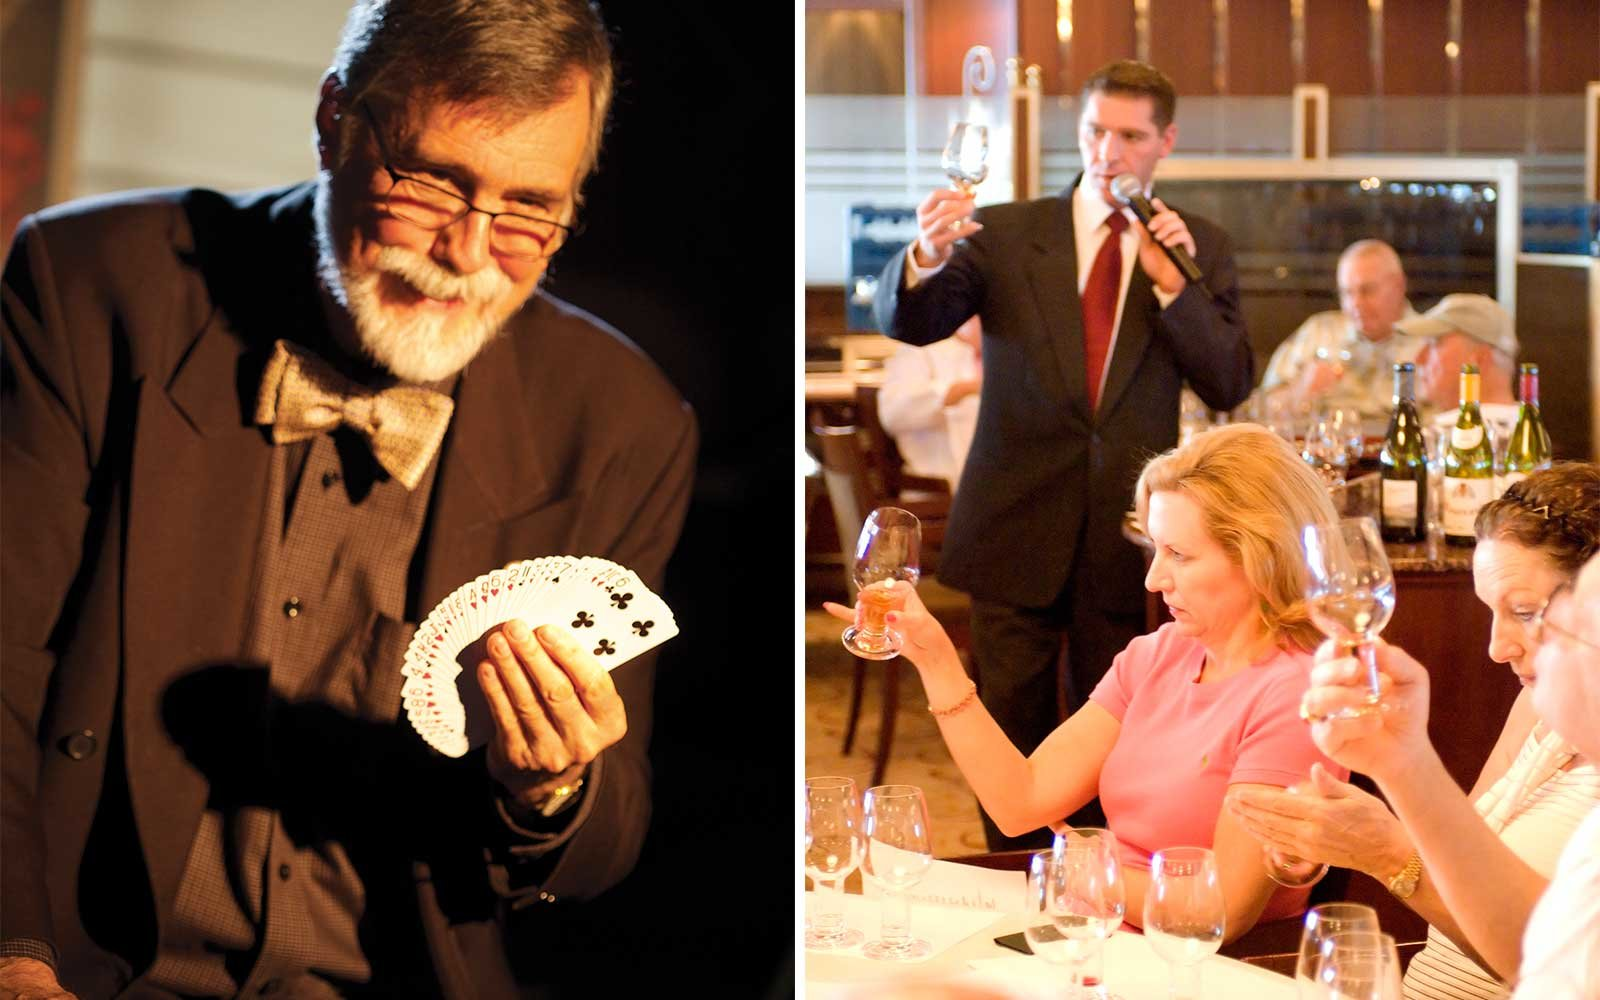 Enrichment programs on board the Crystal Symphony include magic lessons and wine tasting